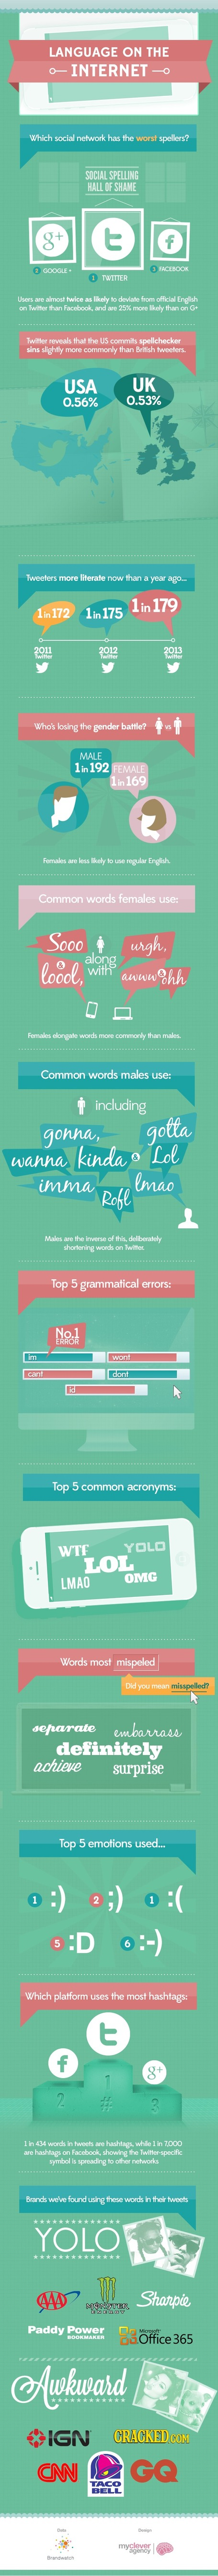 Infographic: Commonly misspelled words on Twitter, Facebook and G+ | AtDotCom Social media | Scoop.it